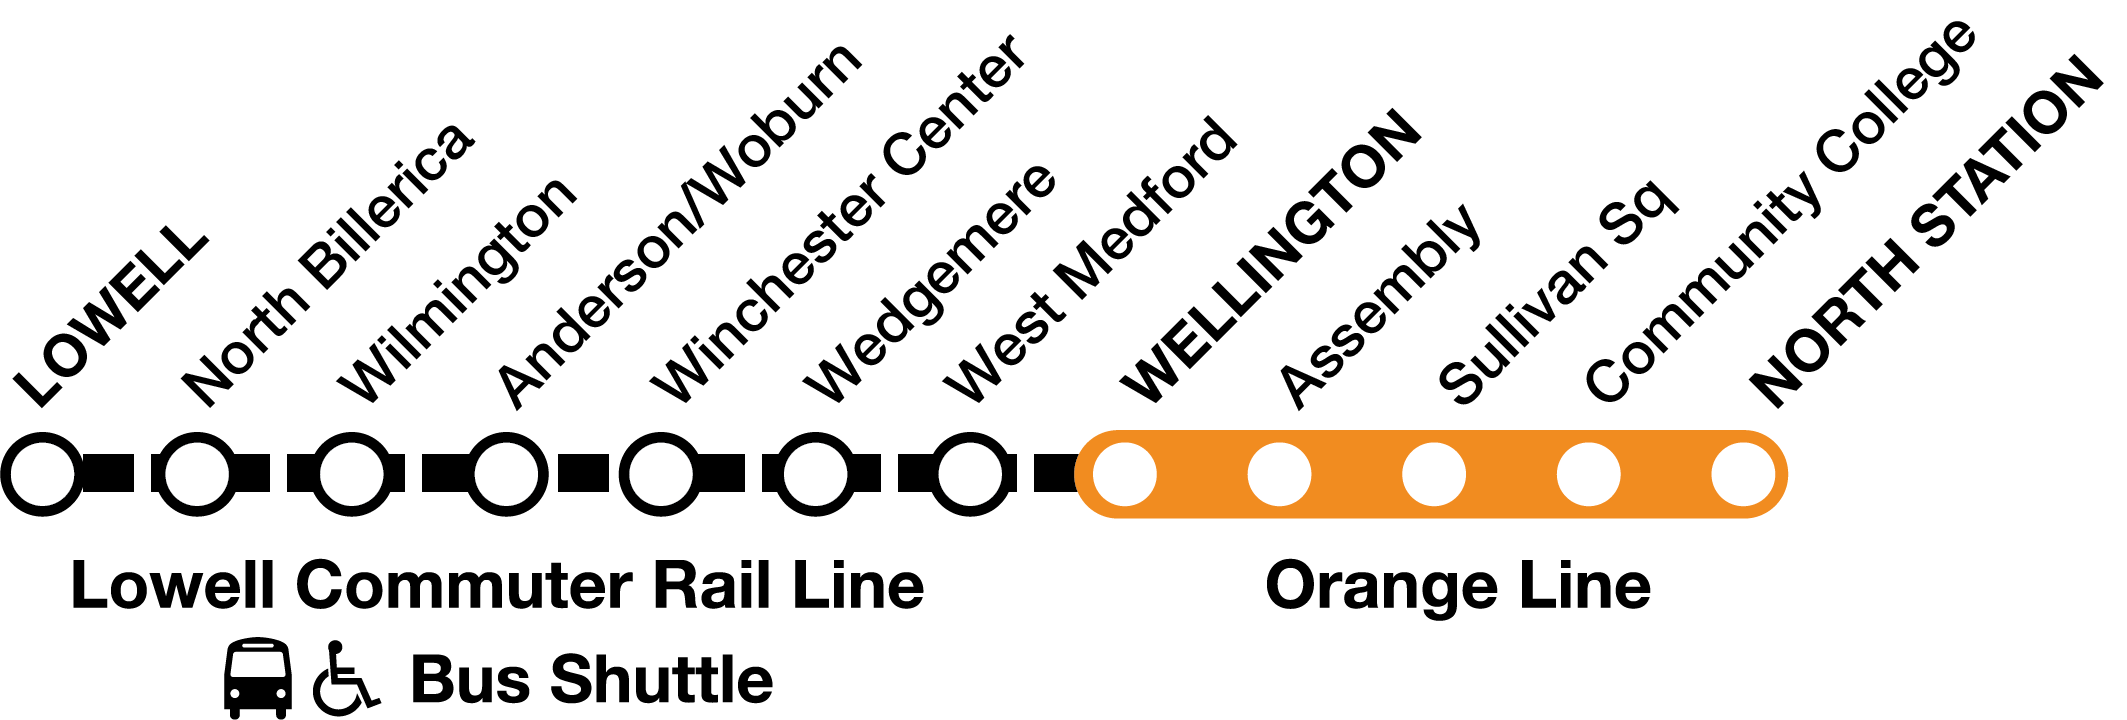 Bus shuttle from Lowell to Wellington, where riders can connect to the Orange Line.